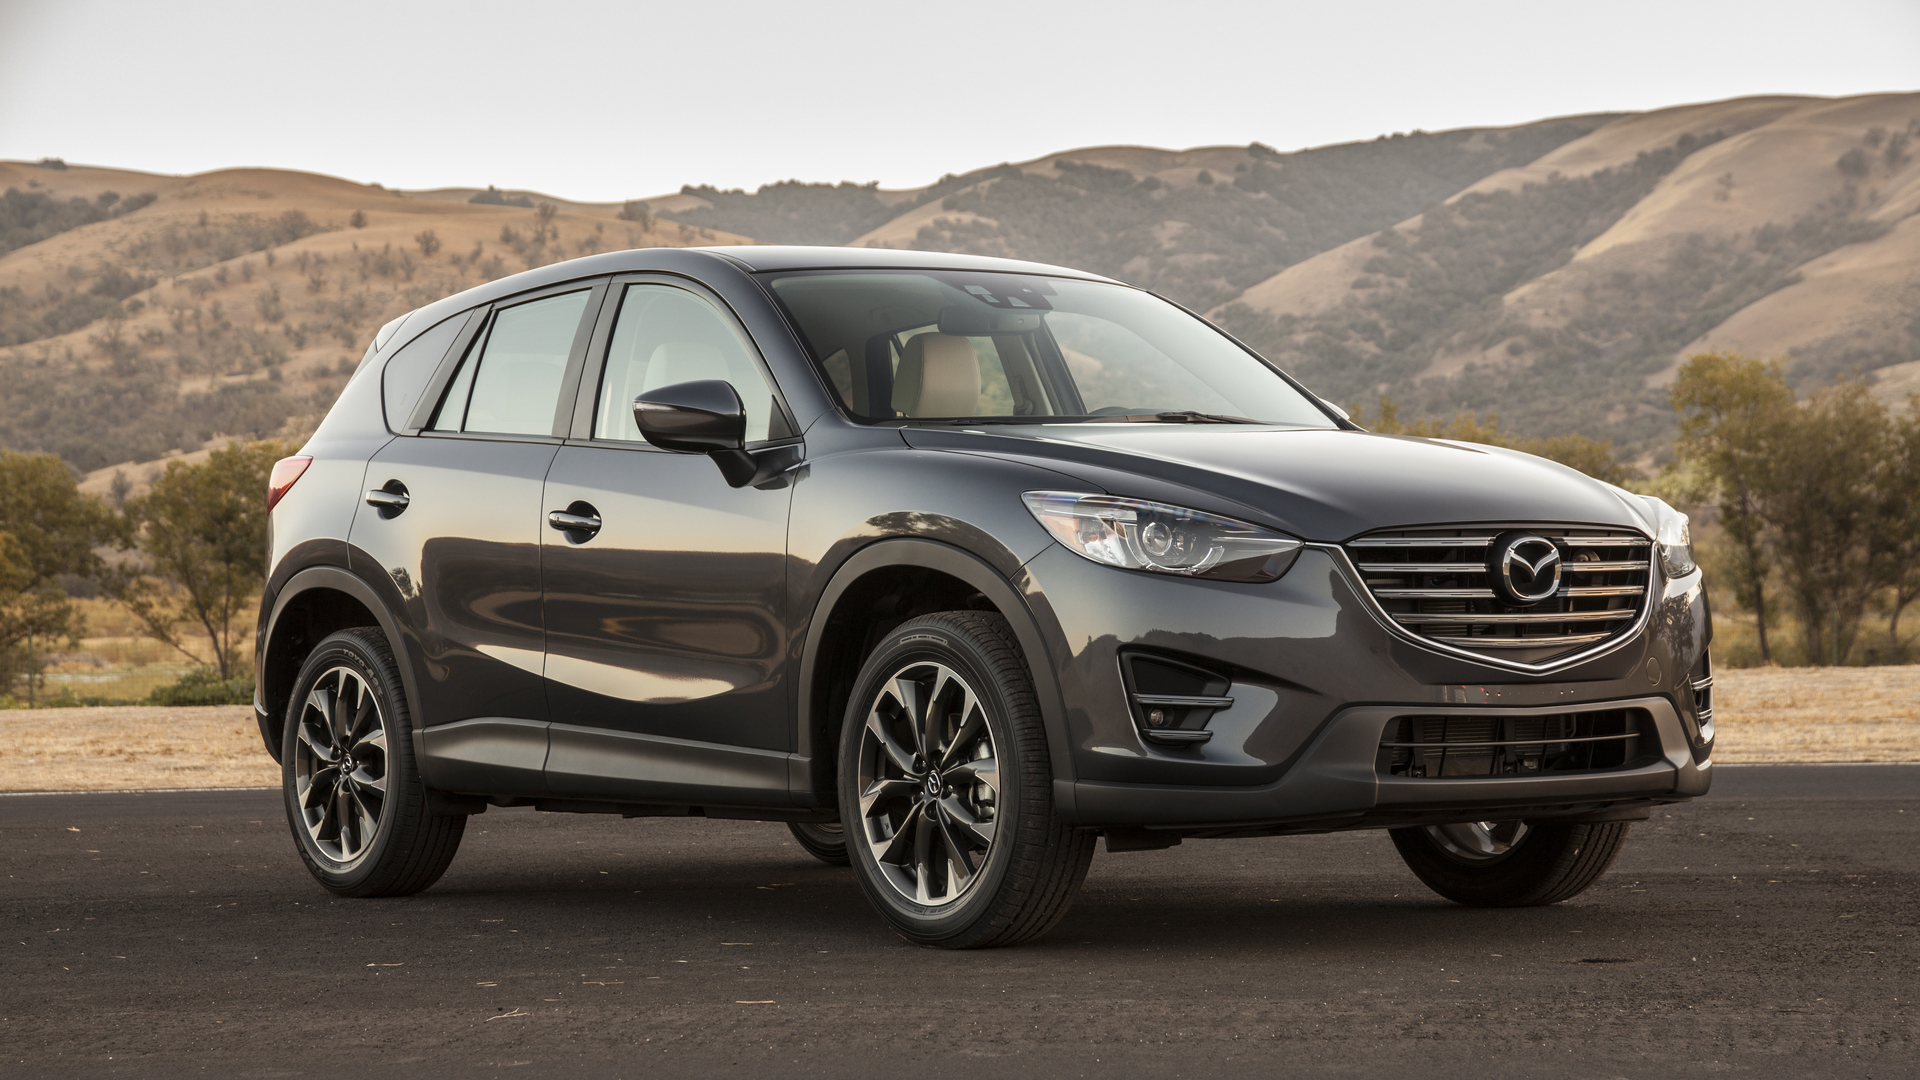 Mazda CX-5 News and Reviews | Motor1.com